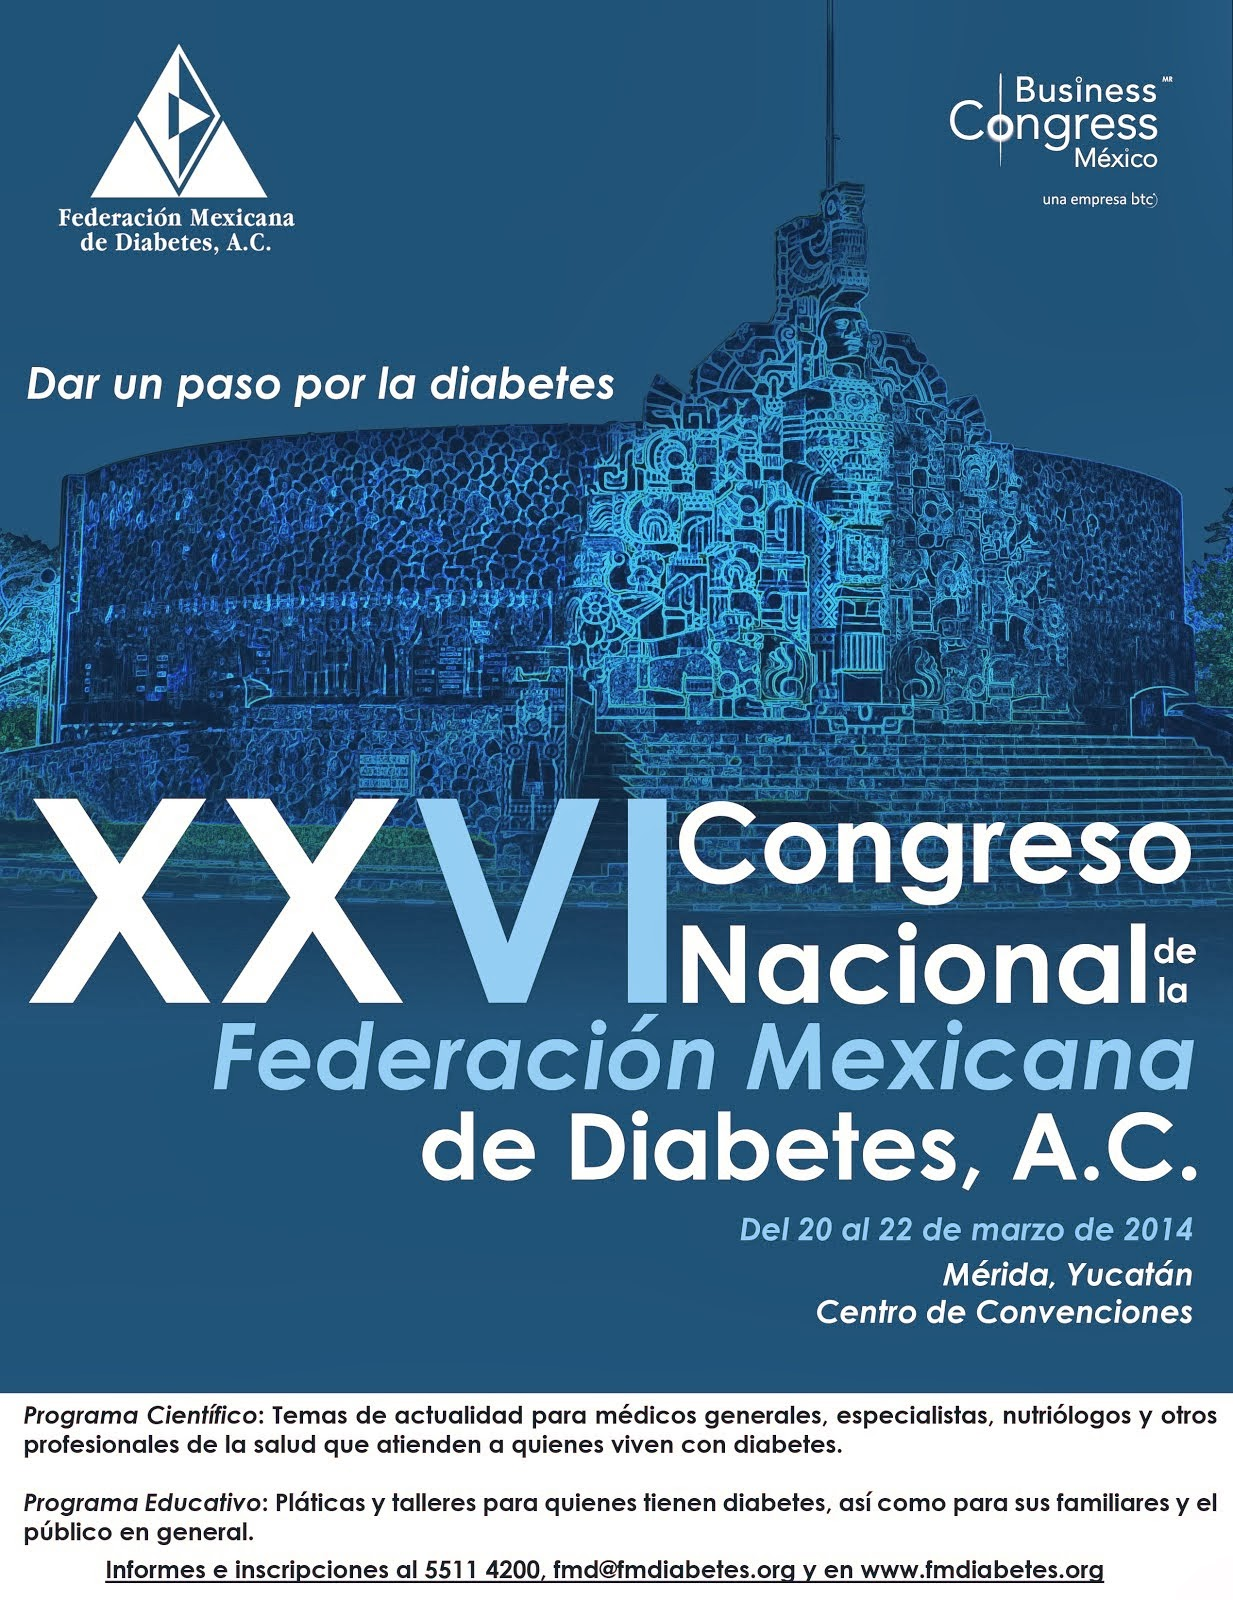 XXVI CONGRESO NACIONAL DE DIABETES